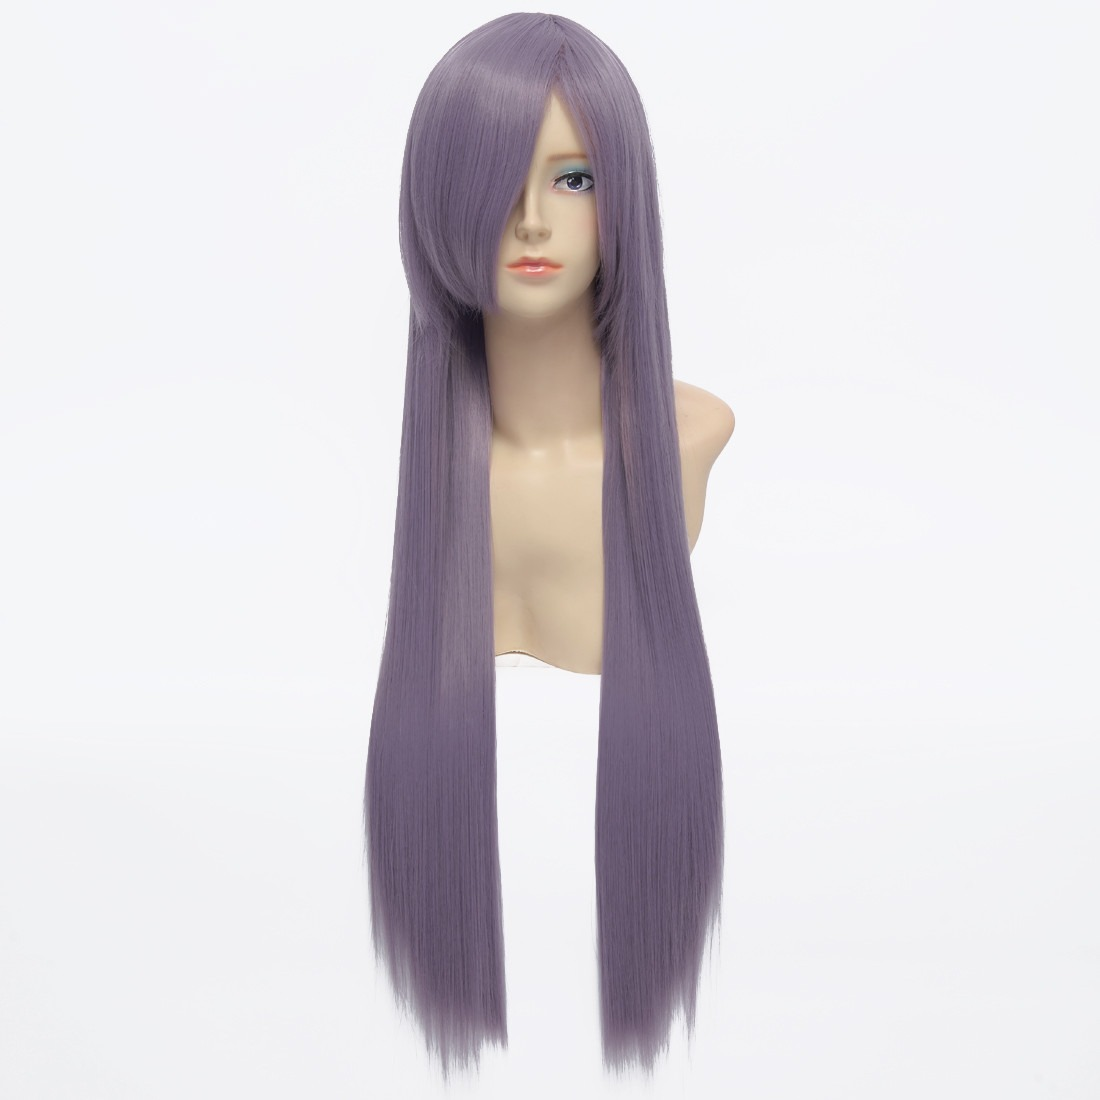 80cm Smoky Purple Straight Long Synthetic Full Cosplay Costume Anime Wig<br><br>Aliexpress